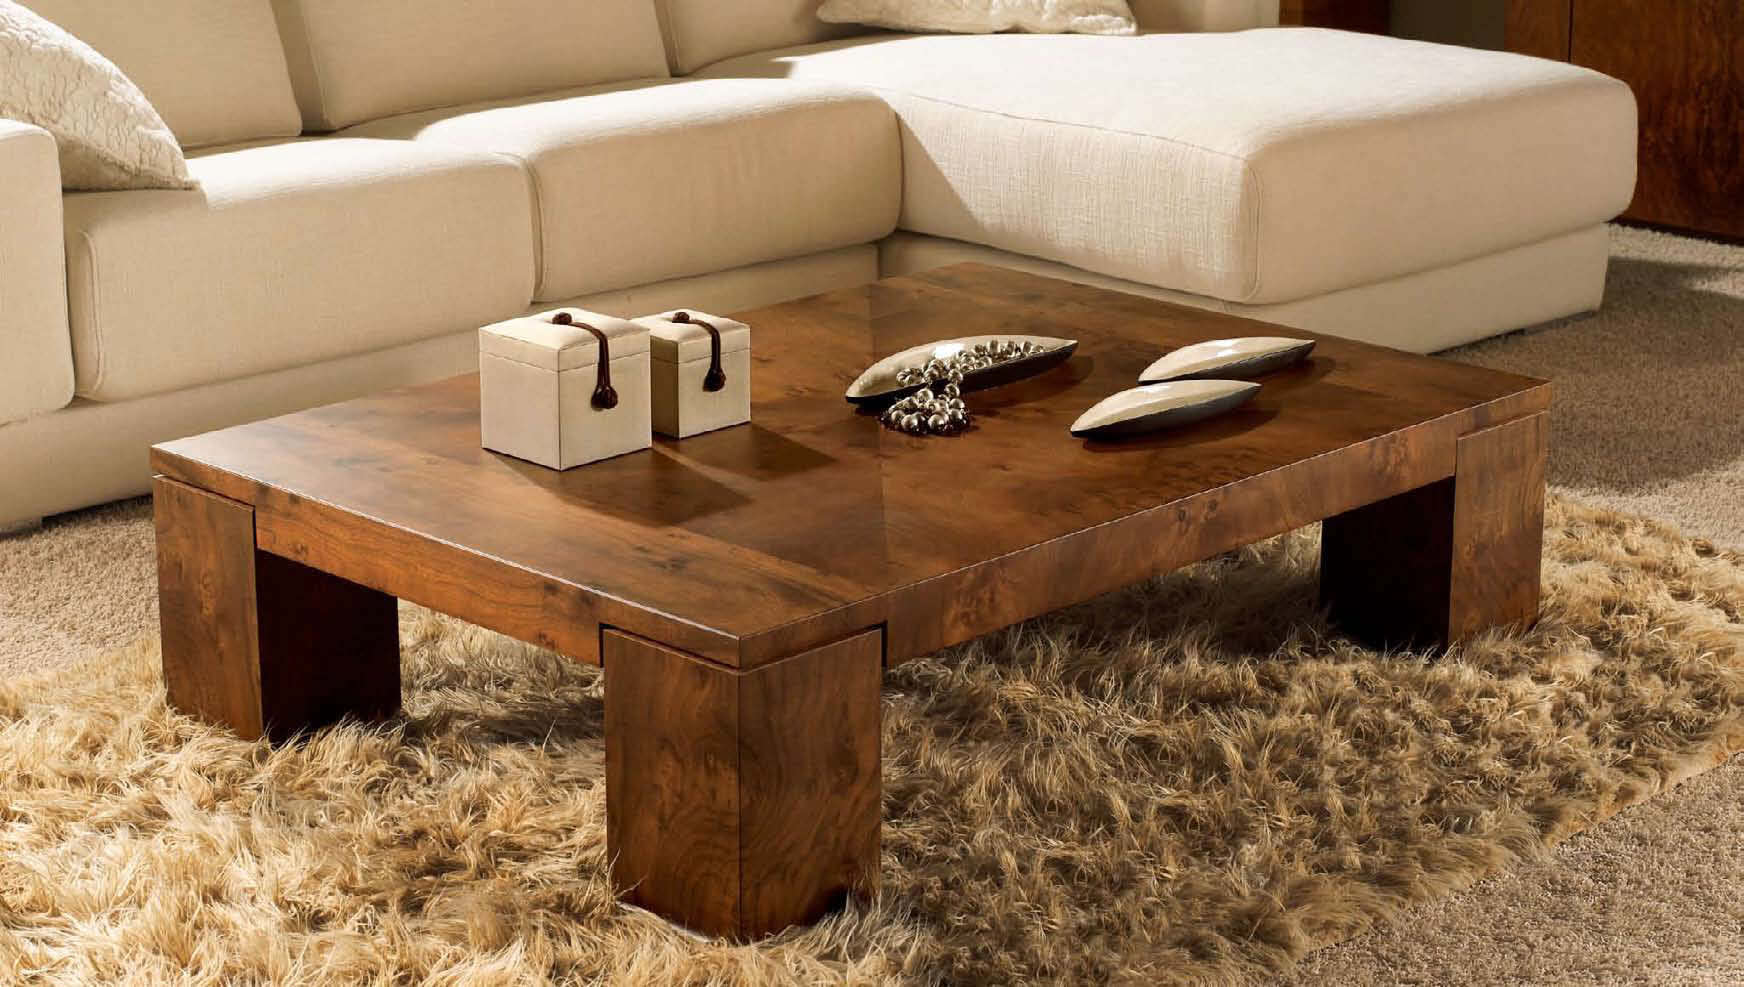 Low Rustic Wood Coffee Table Image And Description